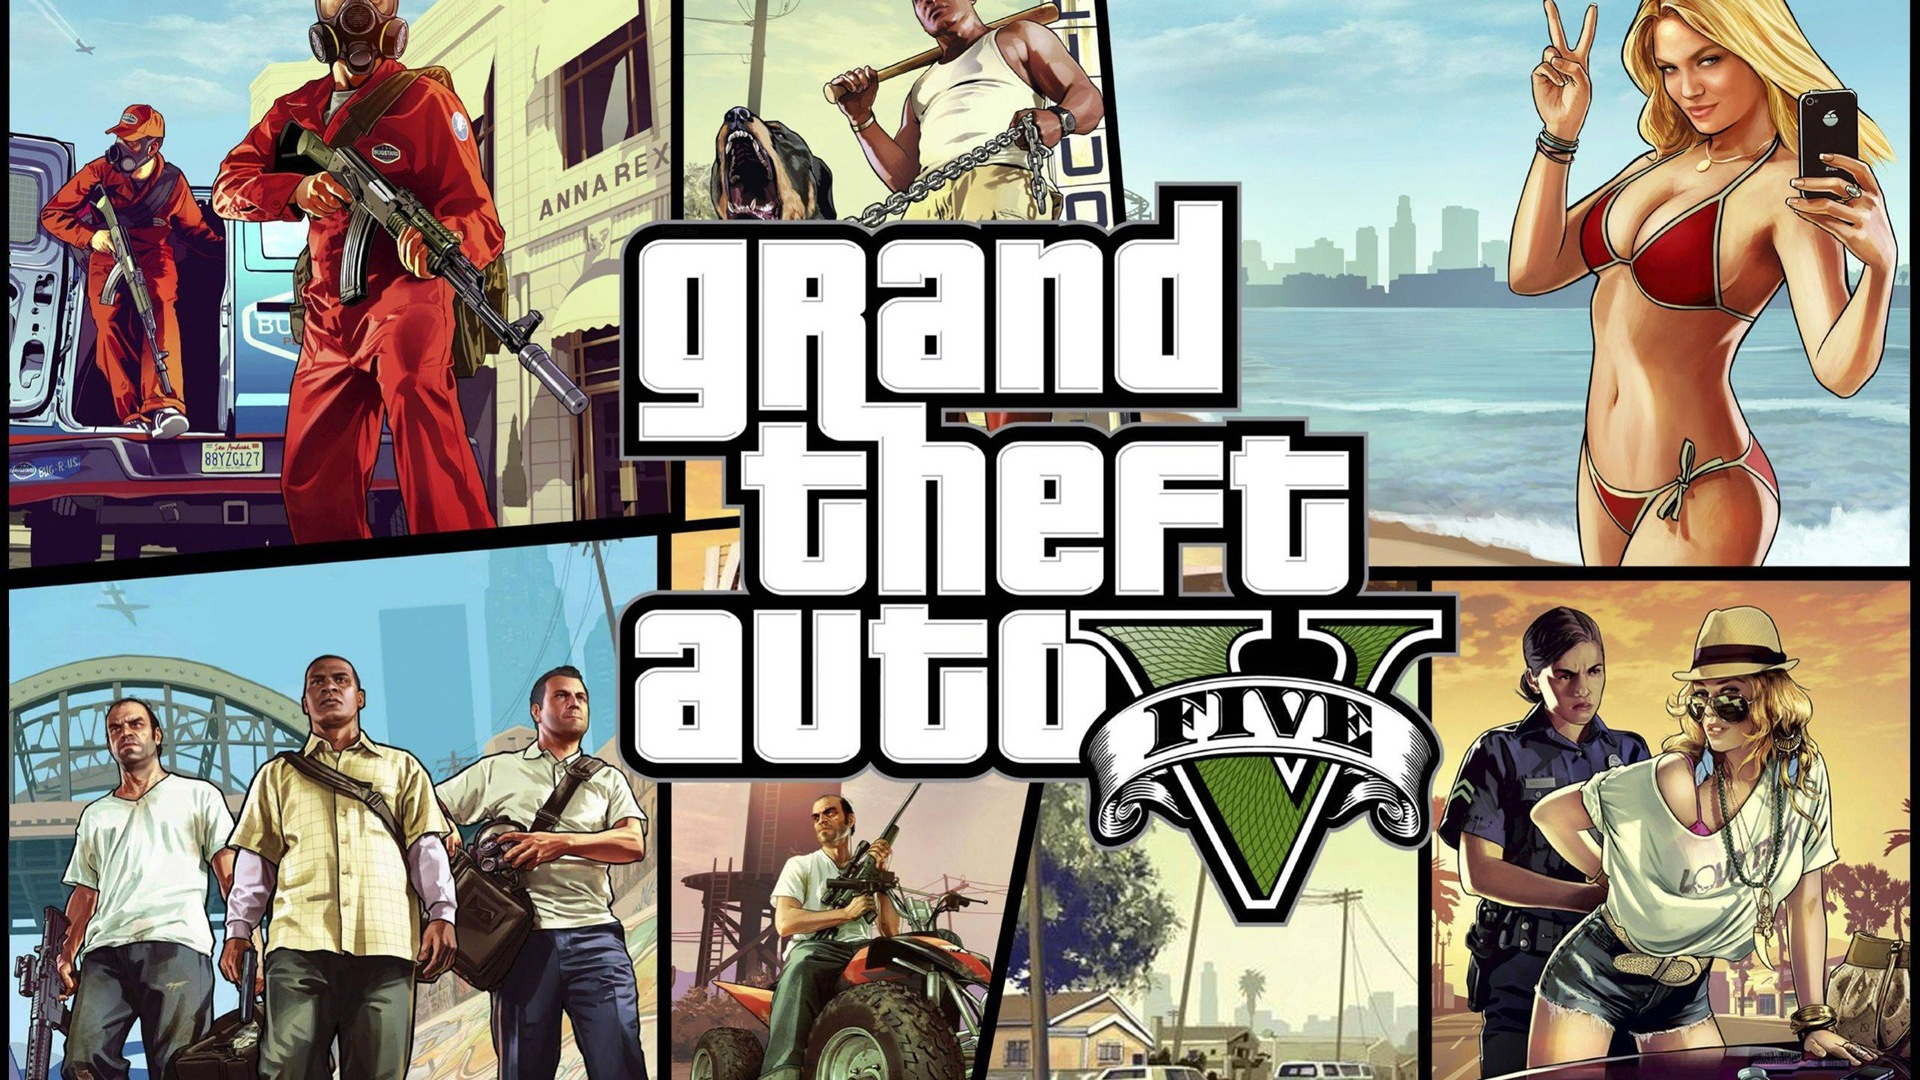 Grand Theft Auto V Gta 5 Hd Game Wallpapers 8 1920x1080 Wallpaper